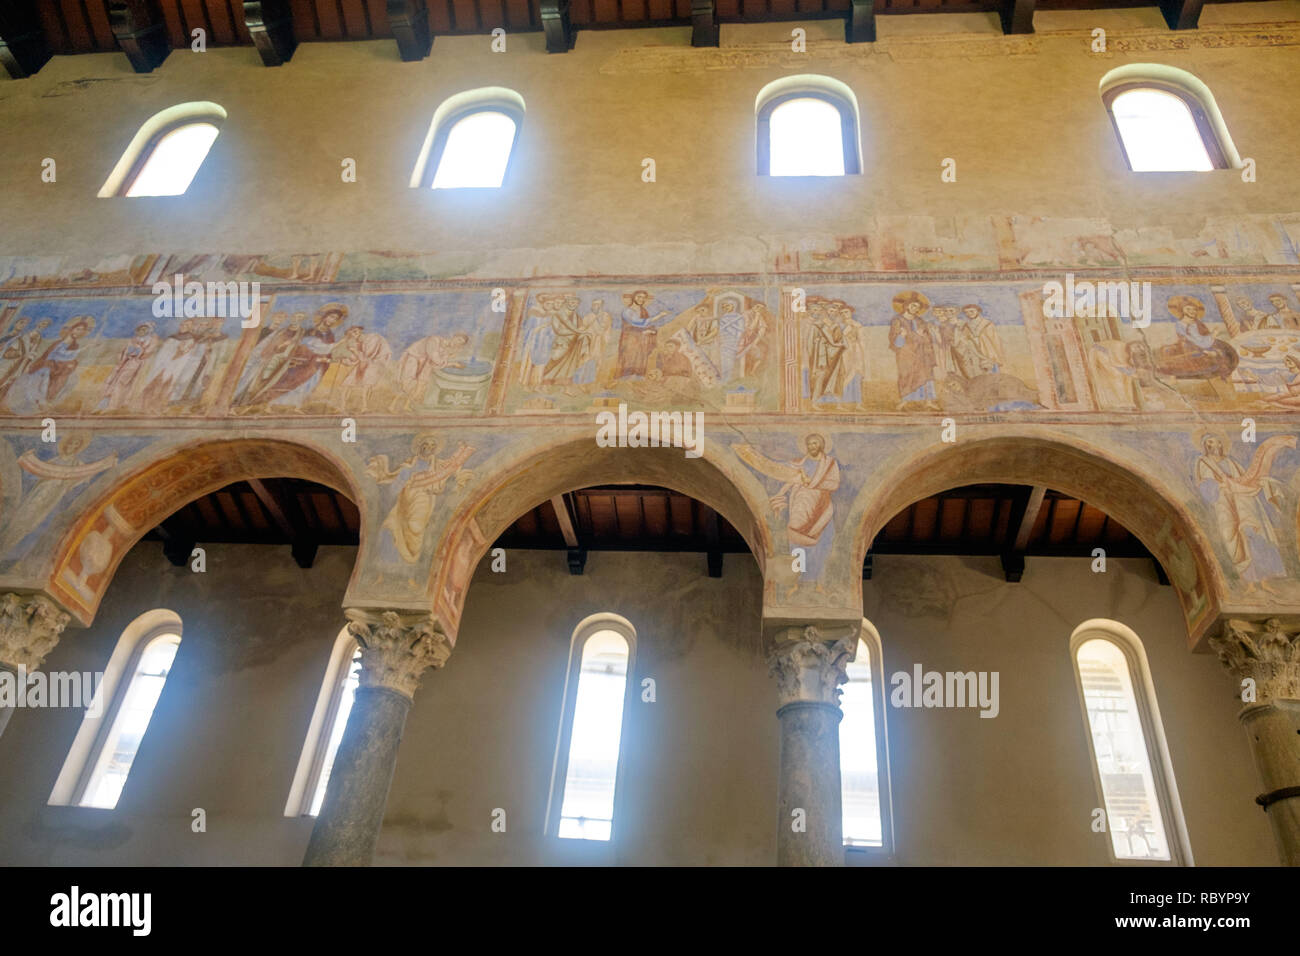 The church of Sant'Angelo in Formis is of particular historical value and was built in the 11th century. Here, you see columns and impressive frescos. Stock Photo